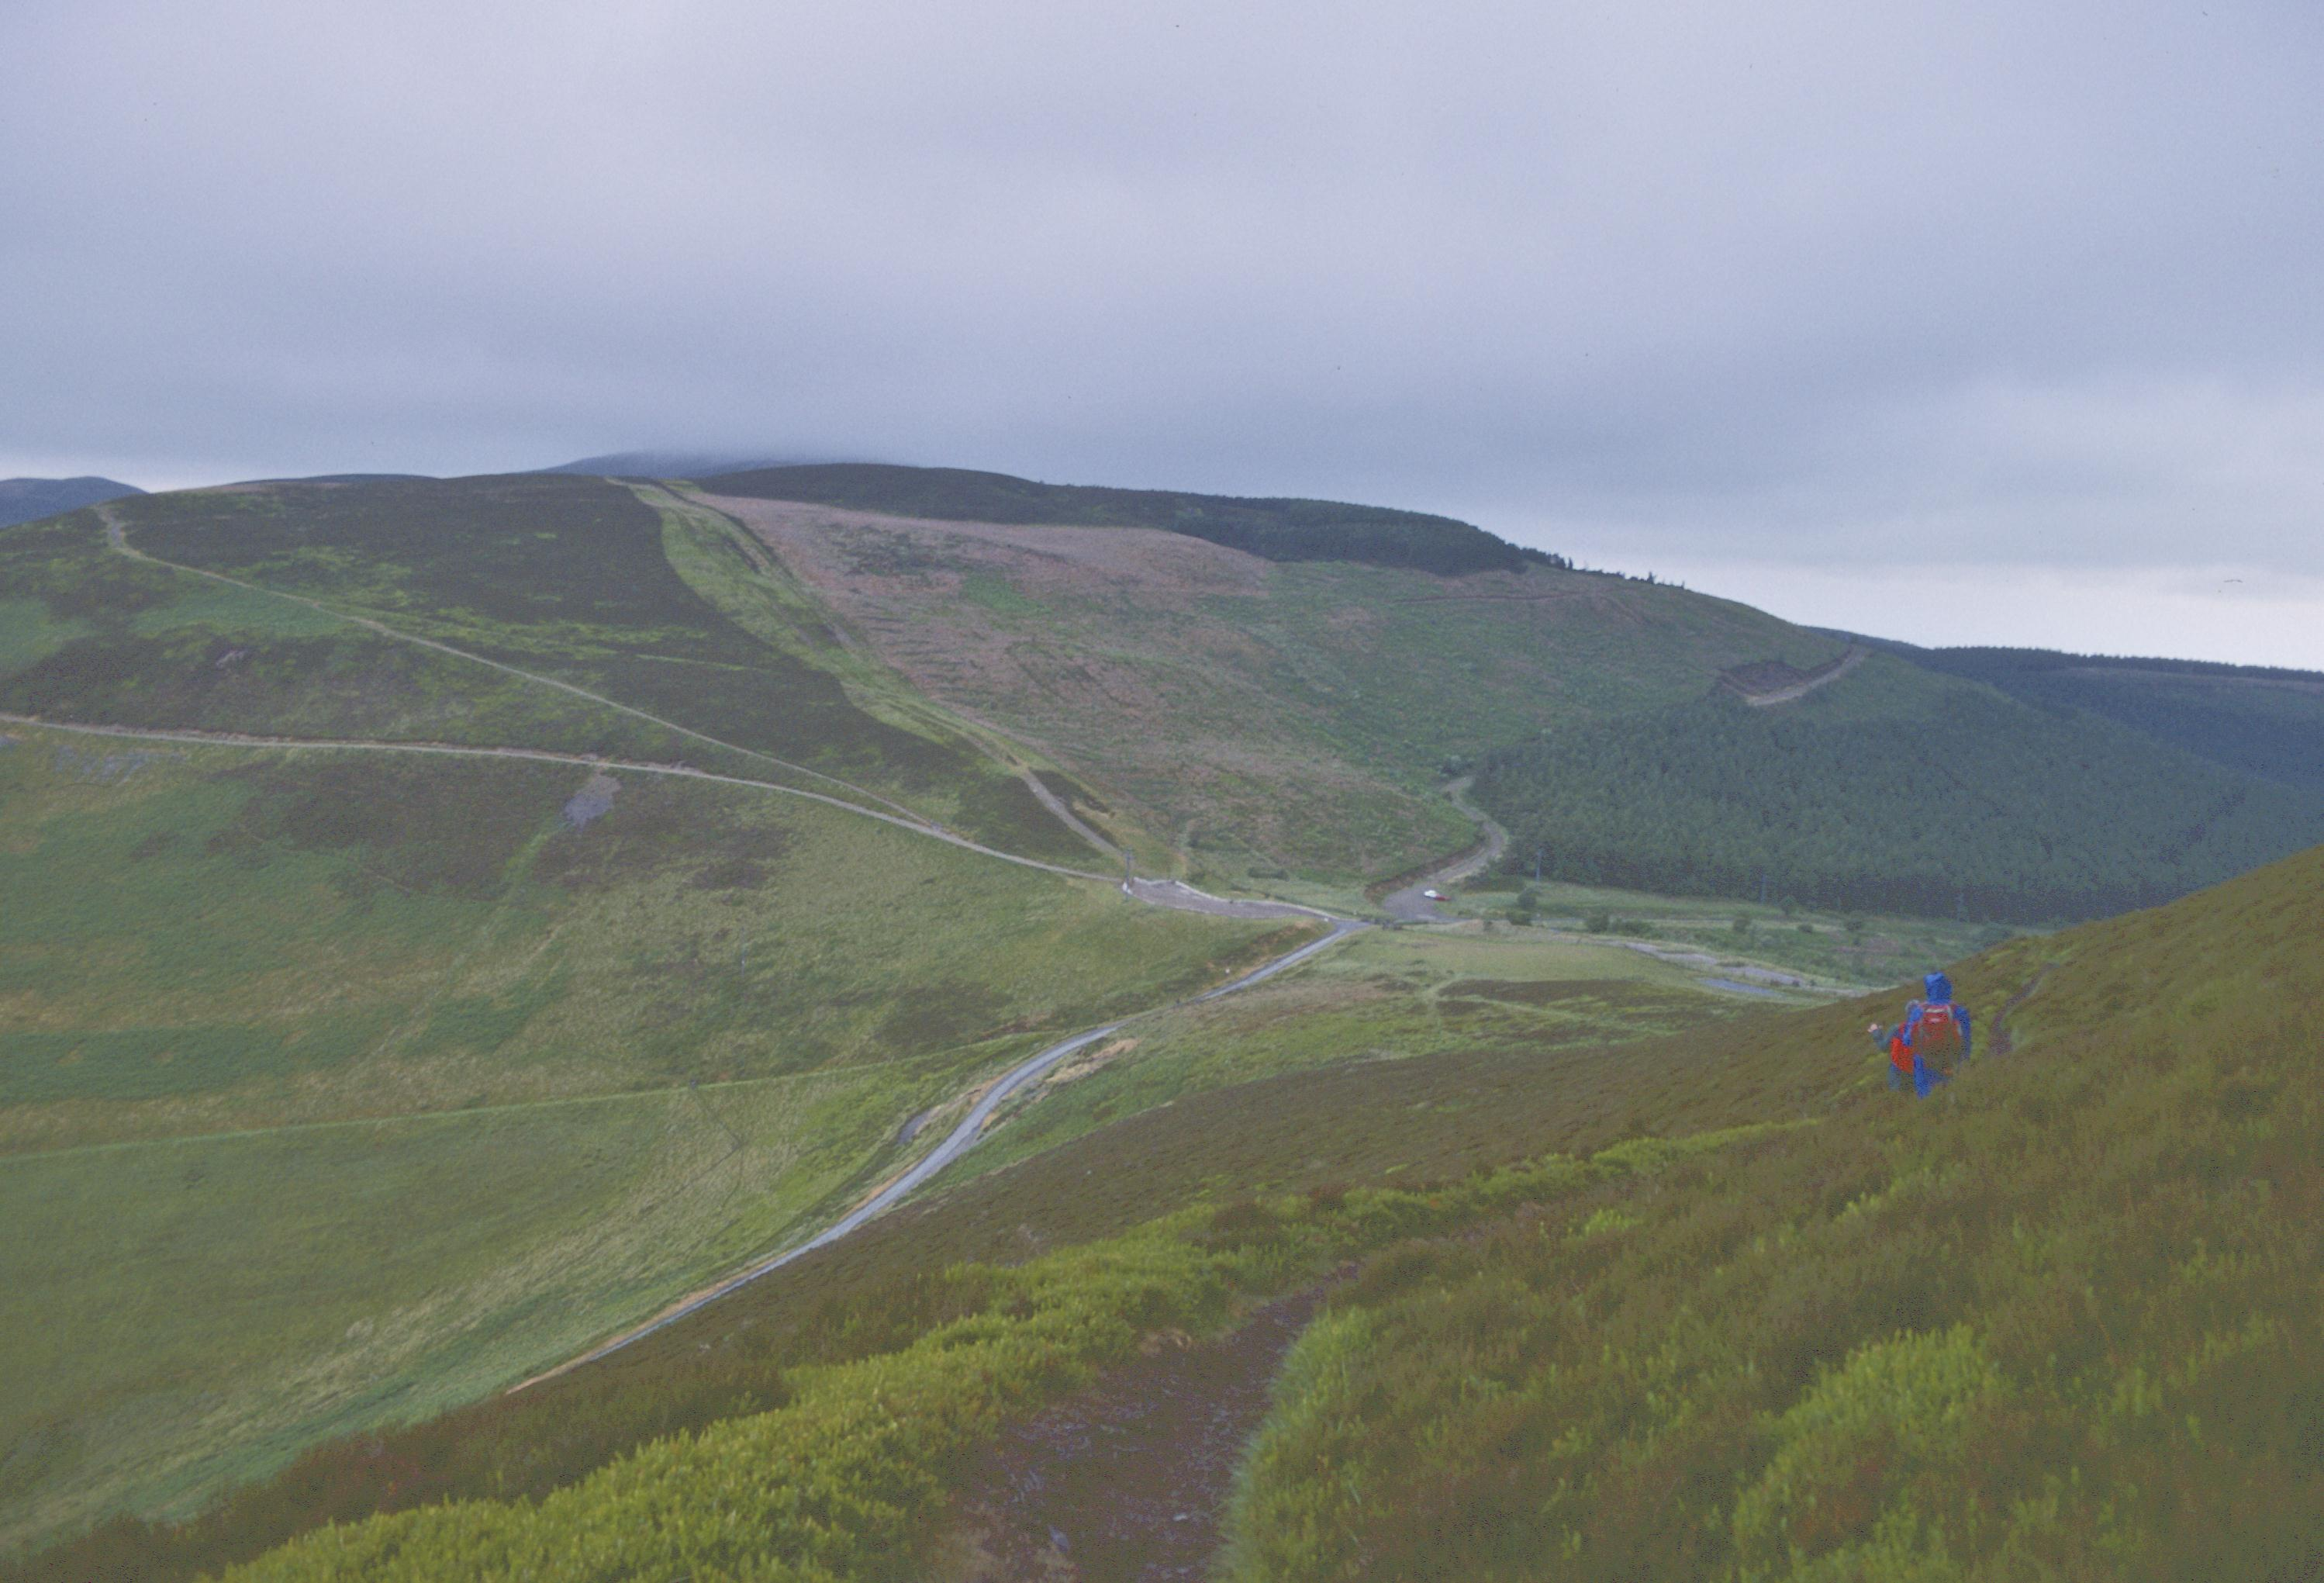 The descent to Bwlch-Pen-Barras